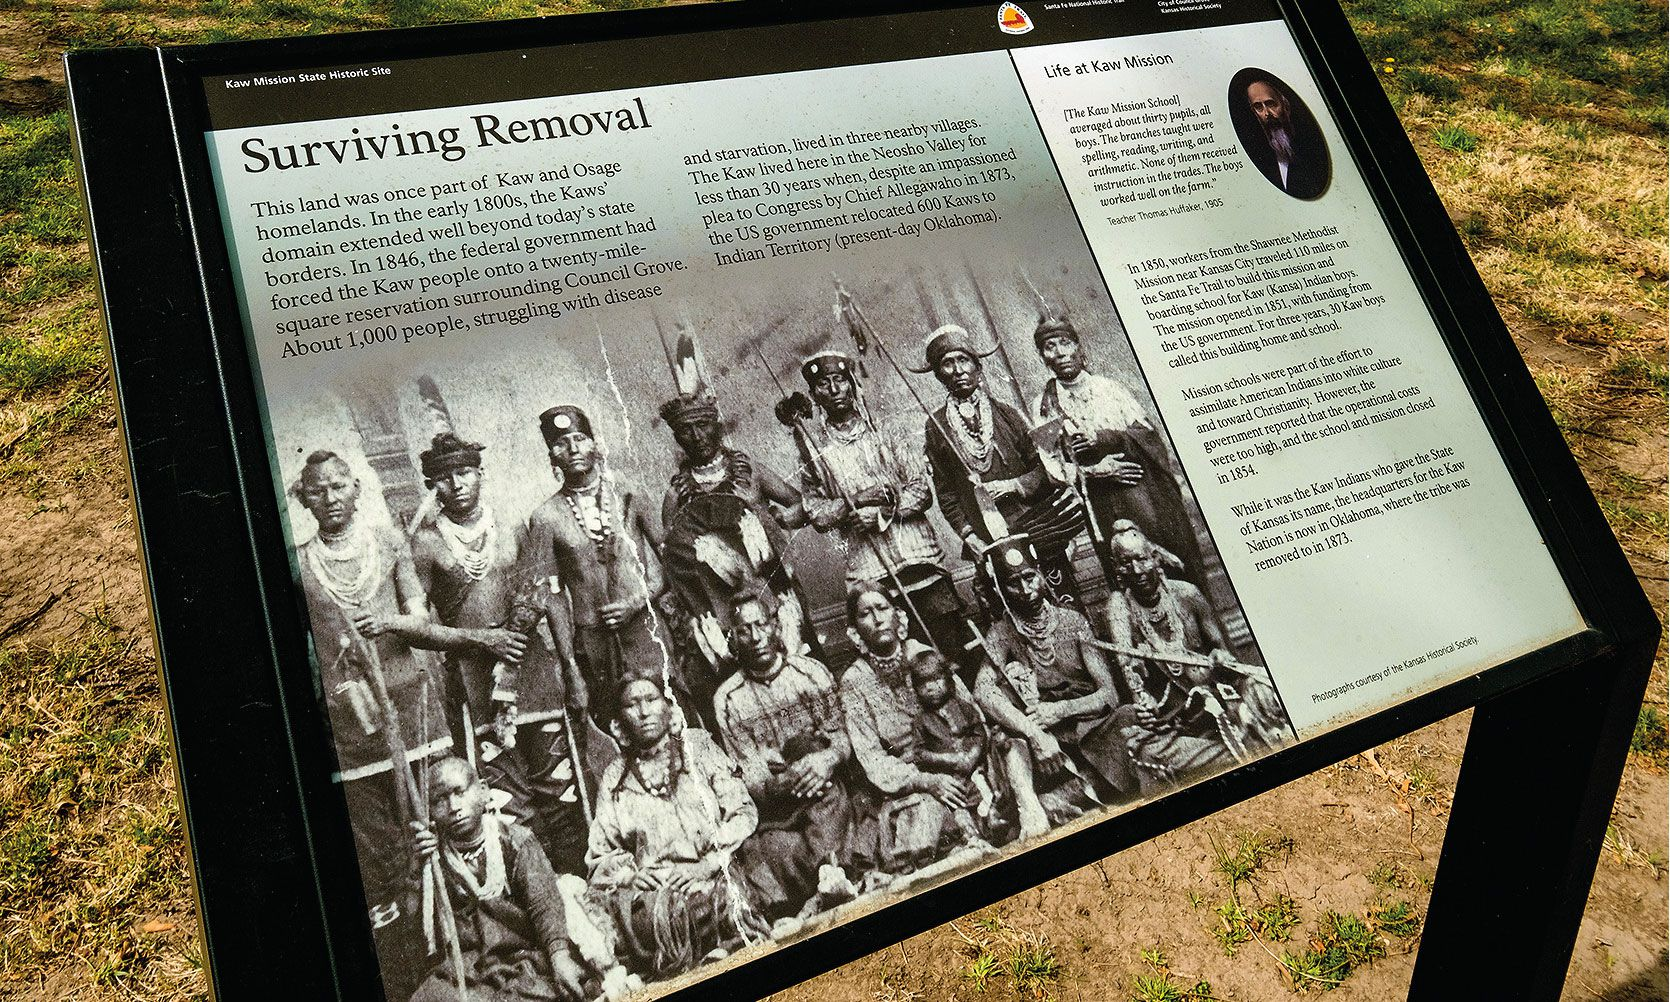 trail of tears indian removal plaque kaw mission historic site true west magazine